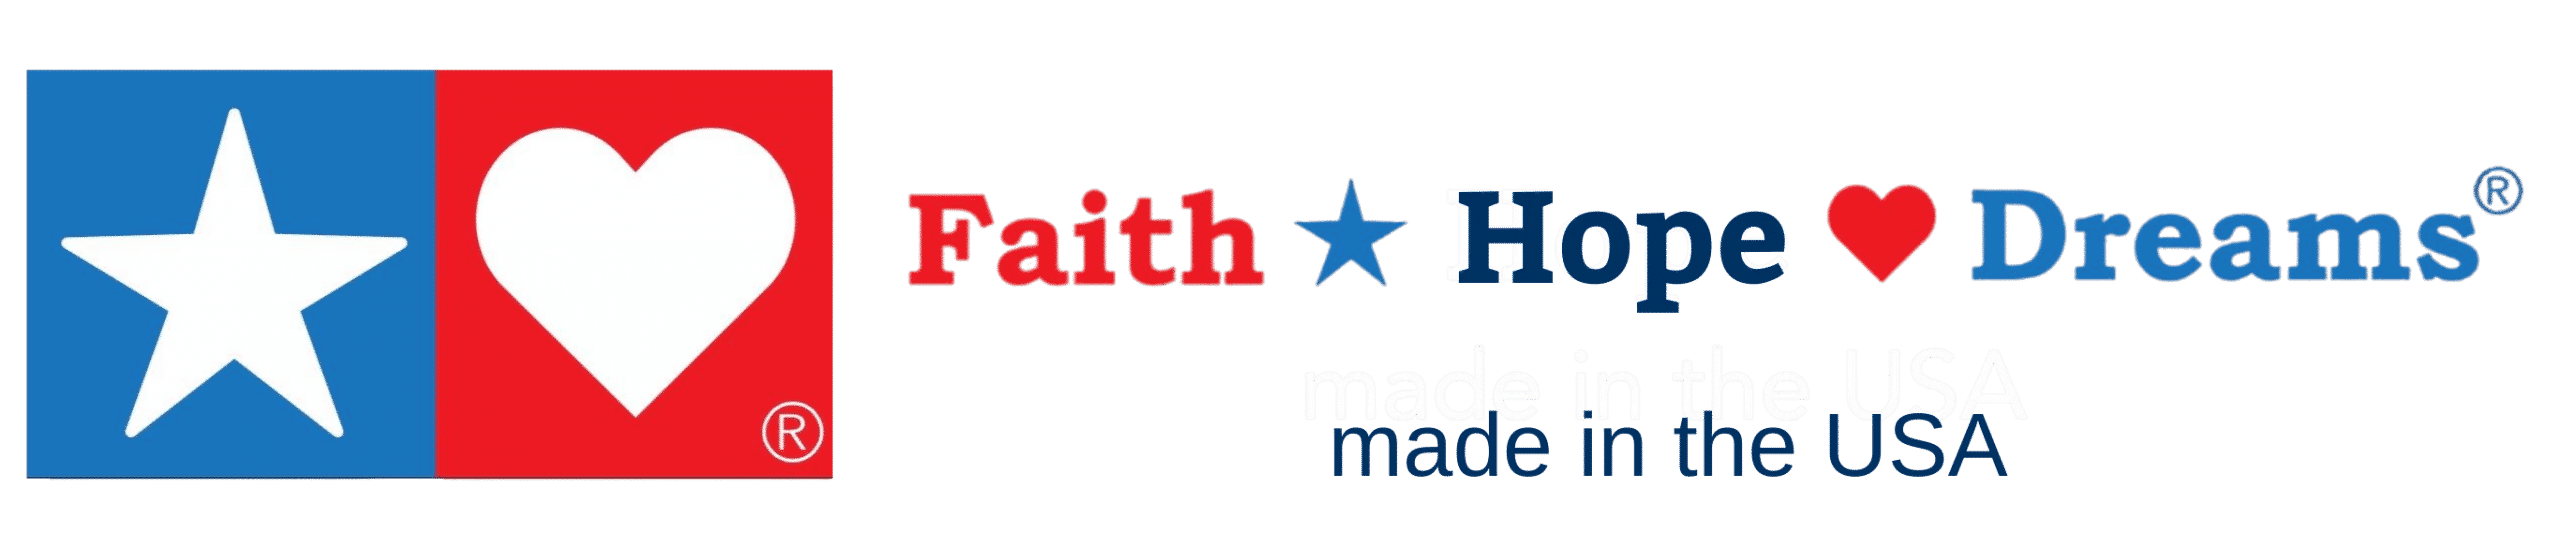 faith hope dreams logo